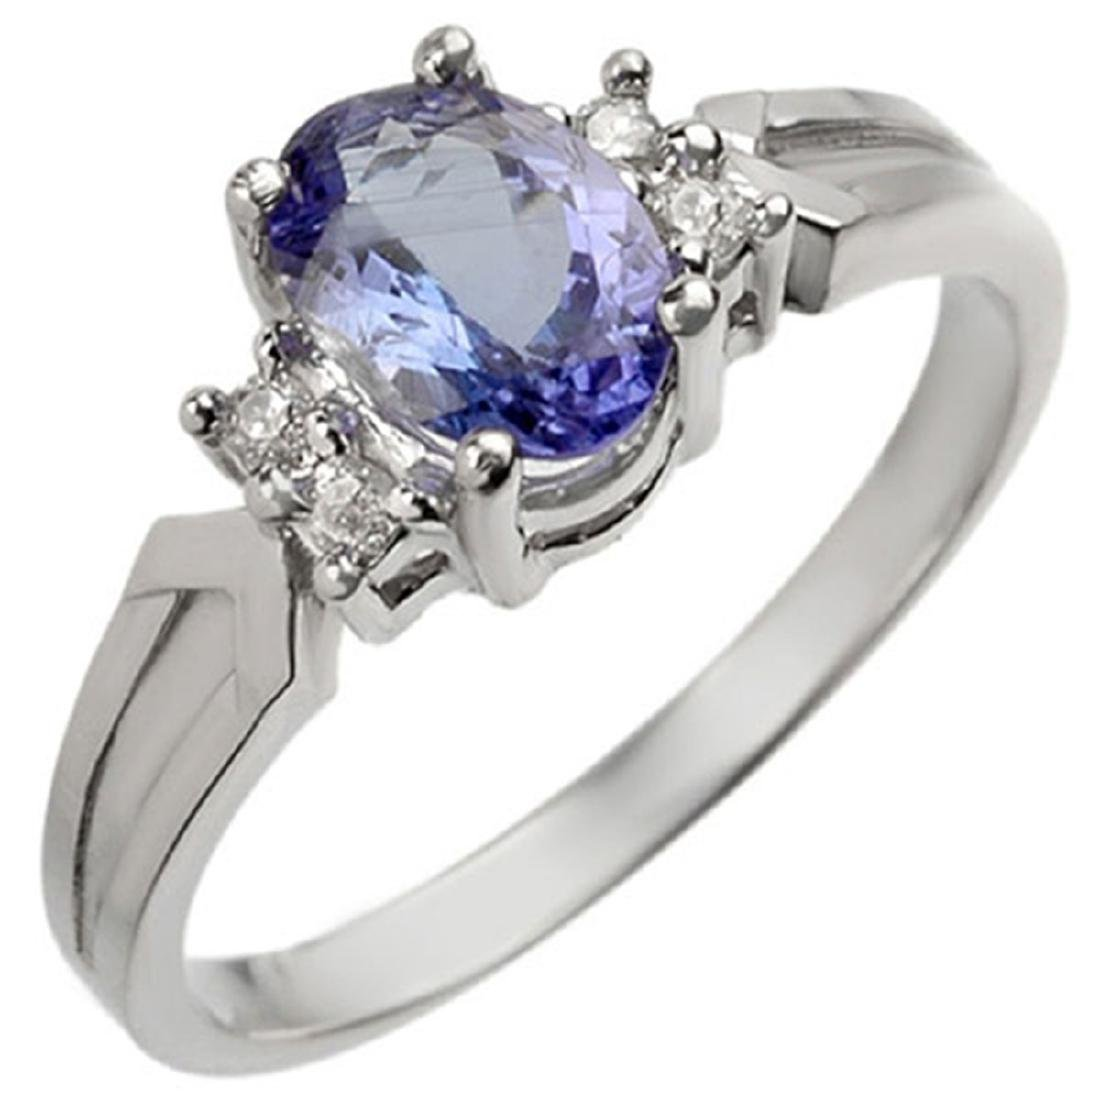 1.10 CTW Tanzanite & Diamond Ring 10K White Gold